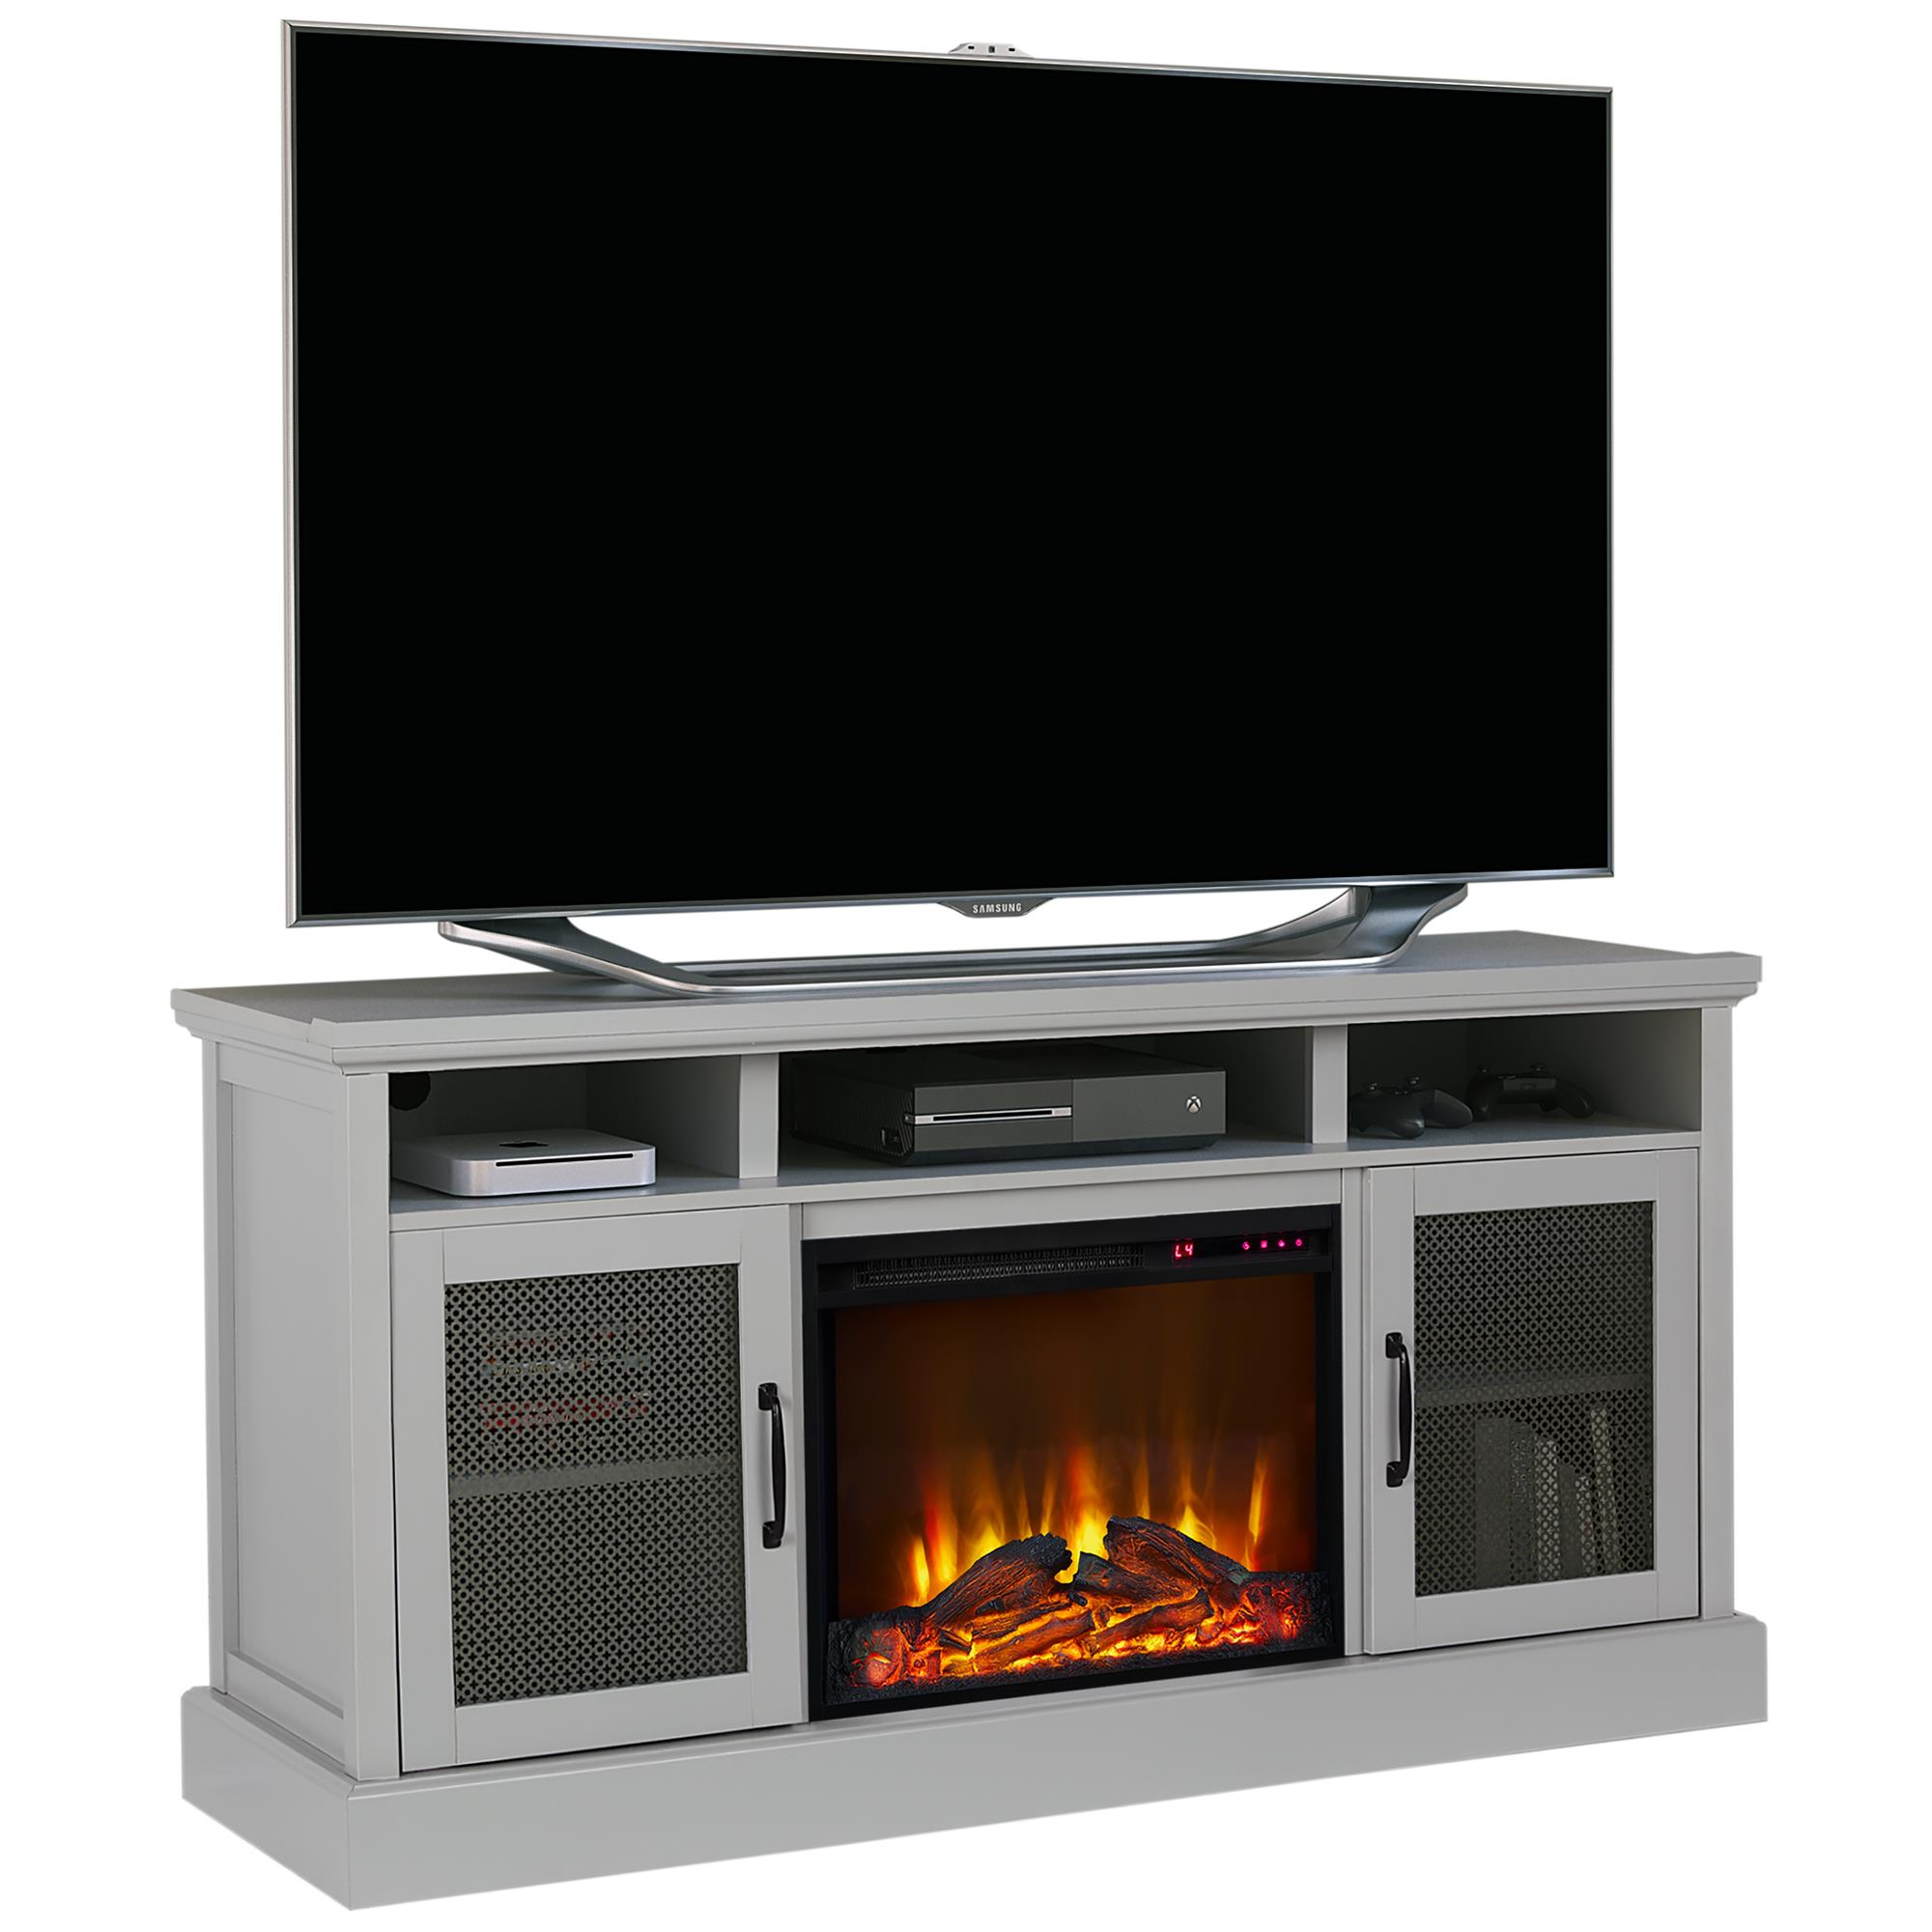 Ameriwood Home Mannington Tv Stand With Fireplace For Tvs Up To 65